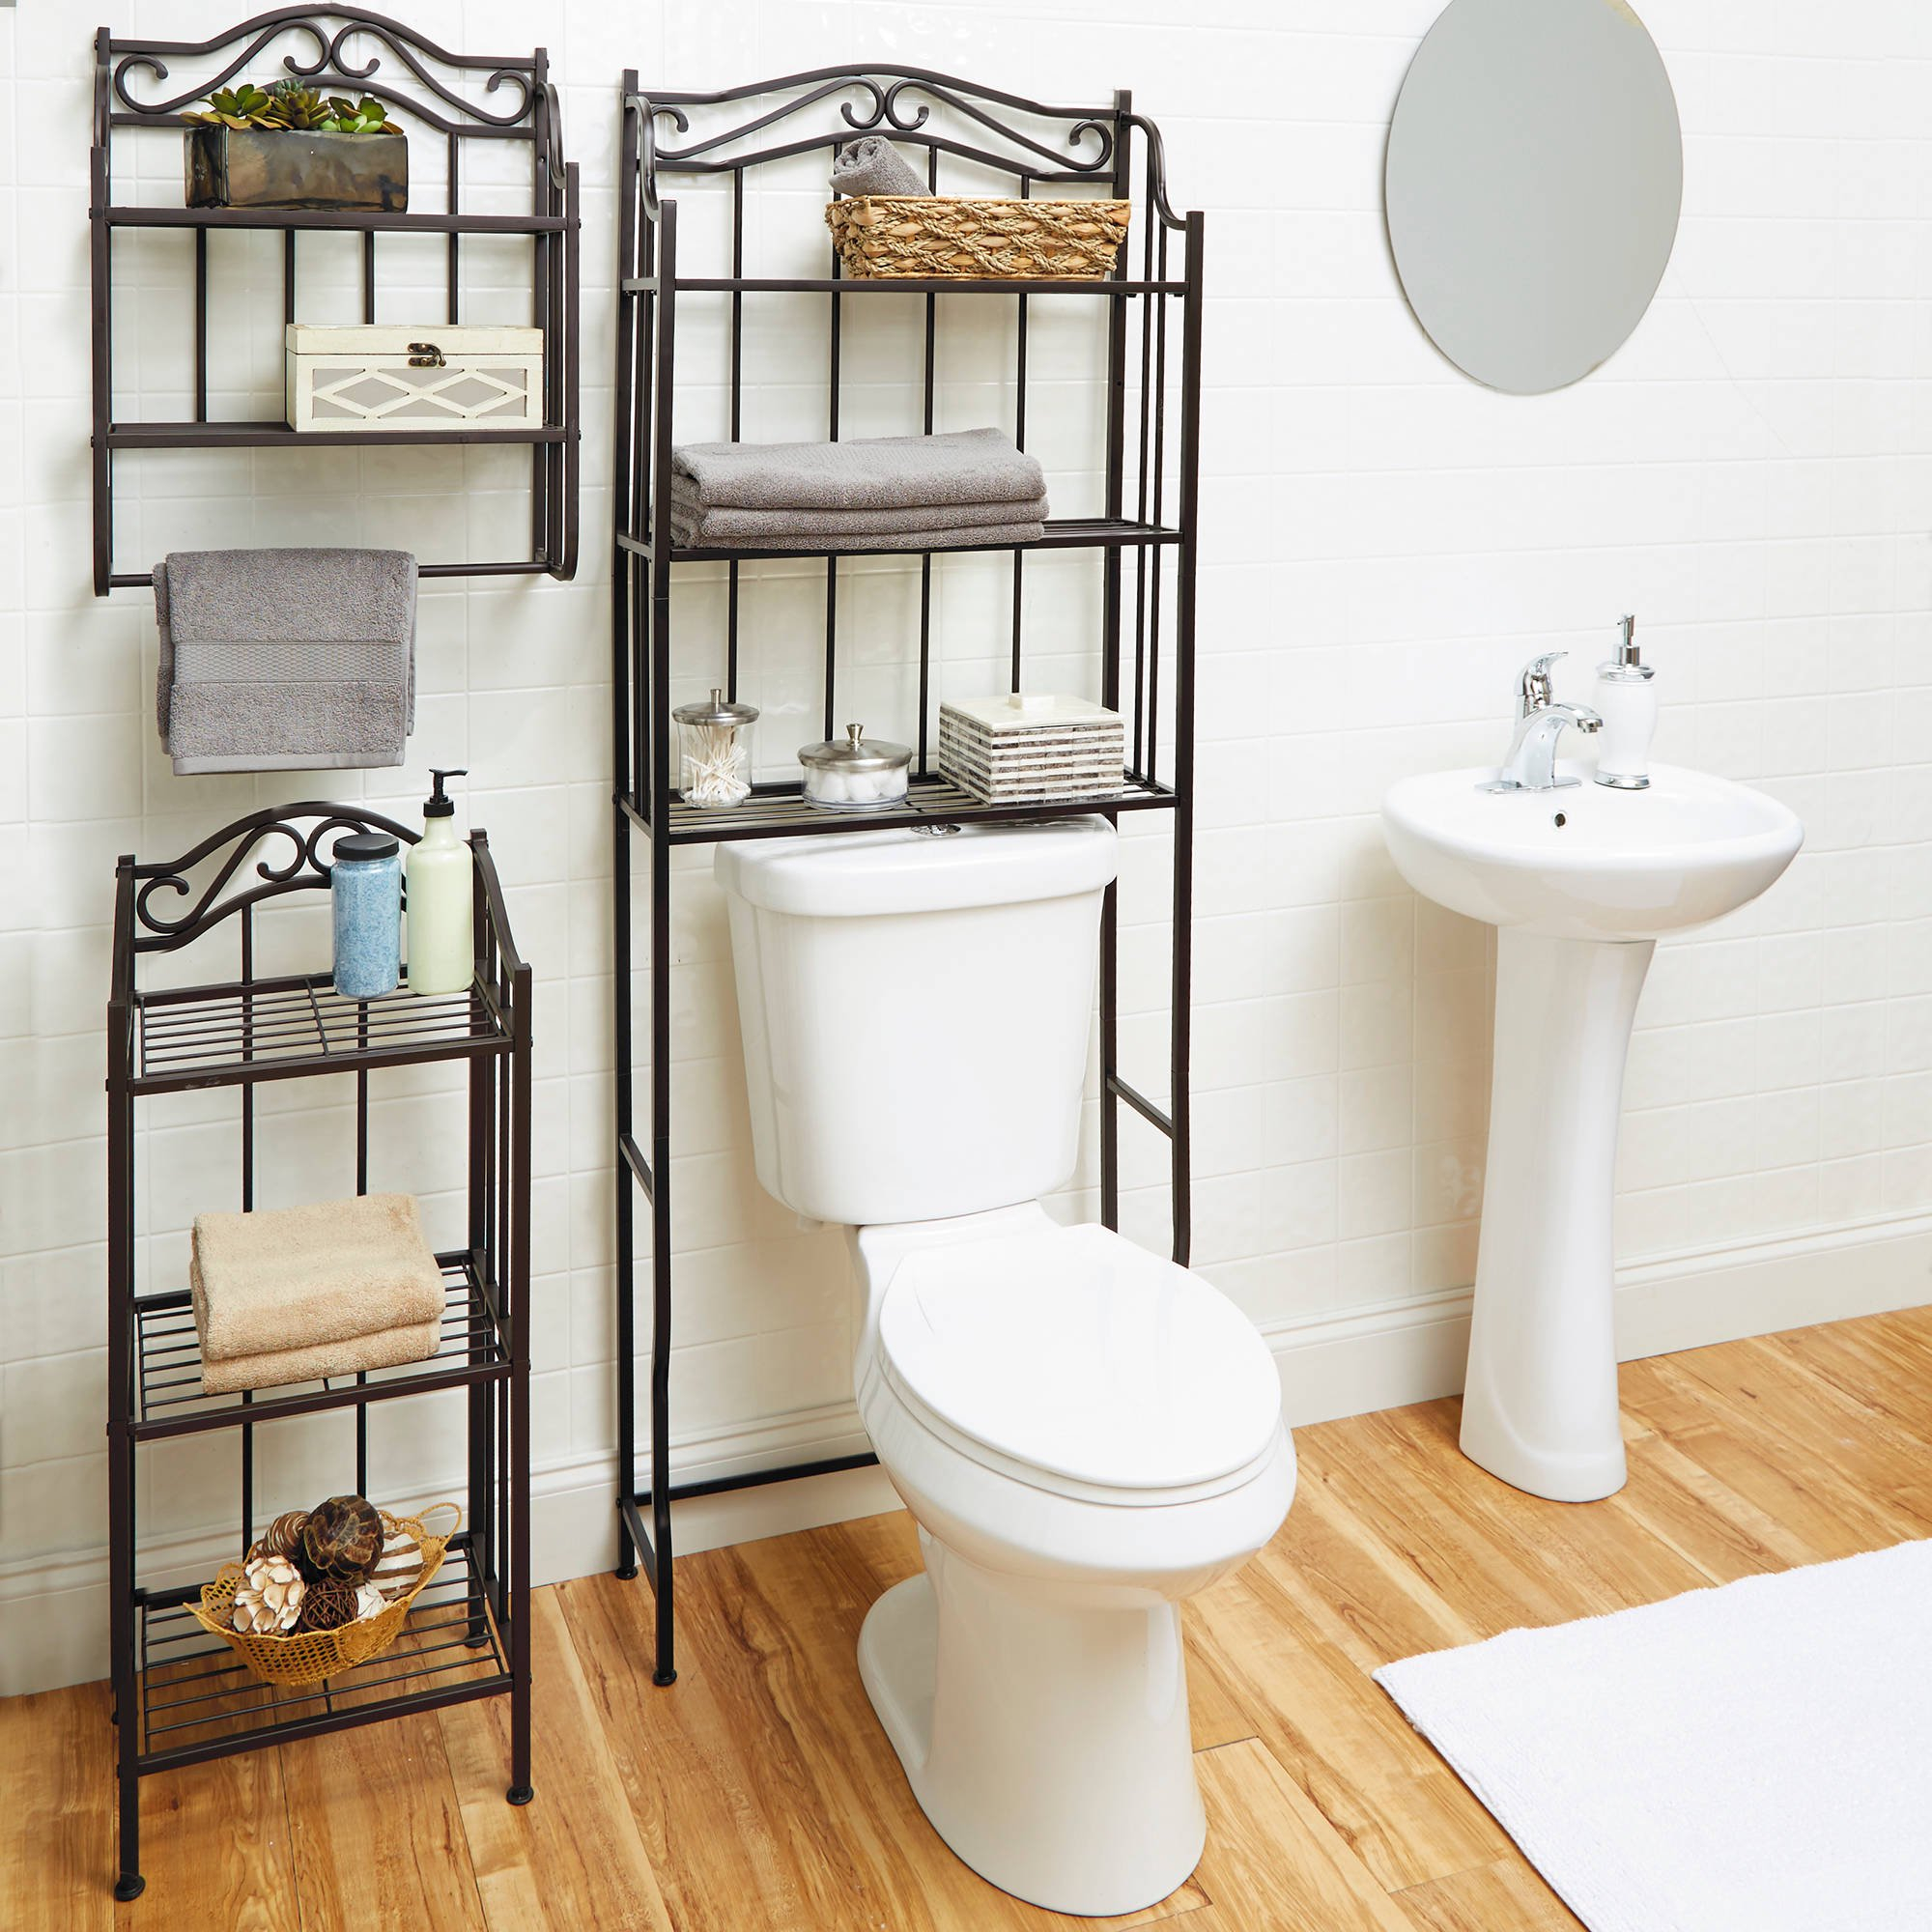 Details About Bathroom Storage Wall Shelf Chapter Oil Rubbed Bronze Towel Organizer Rack Bath for size 2000 X 2000